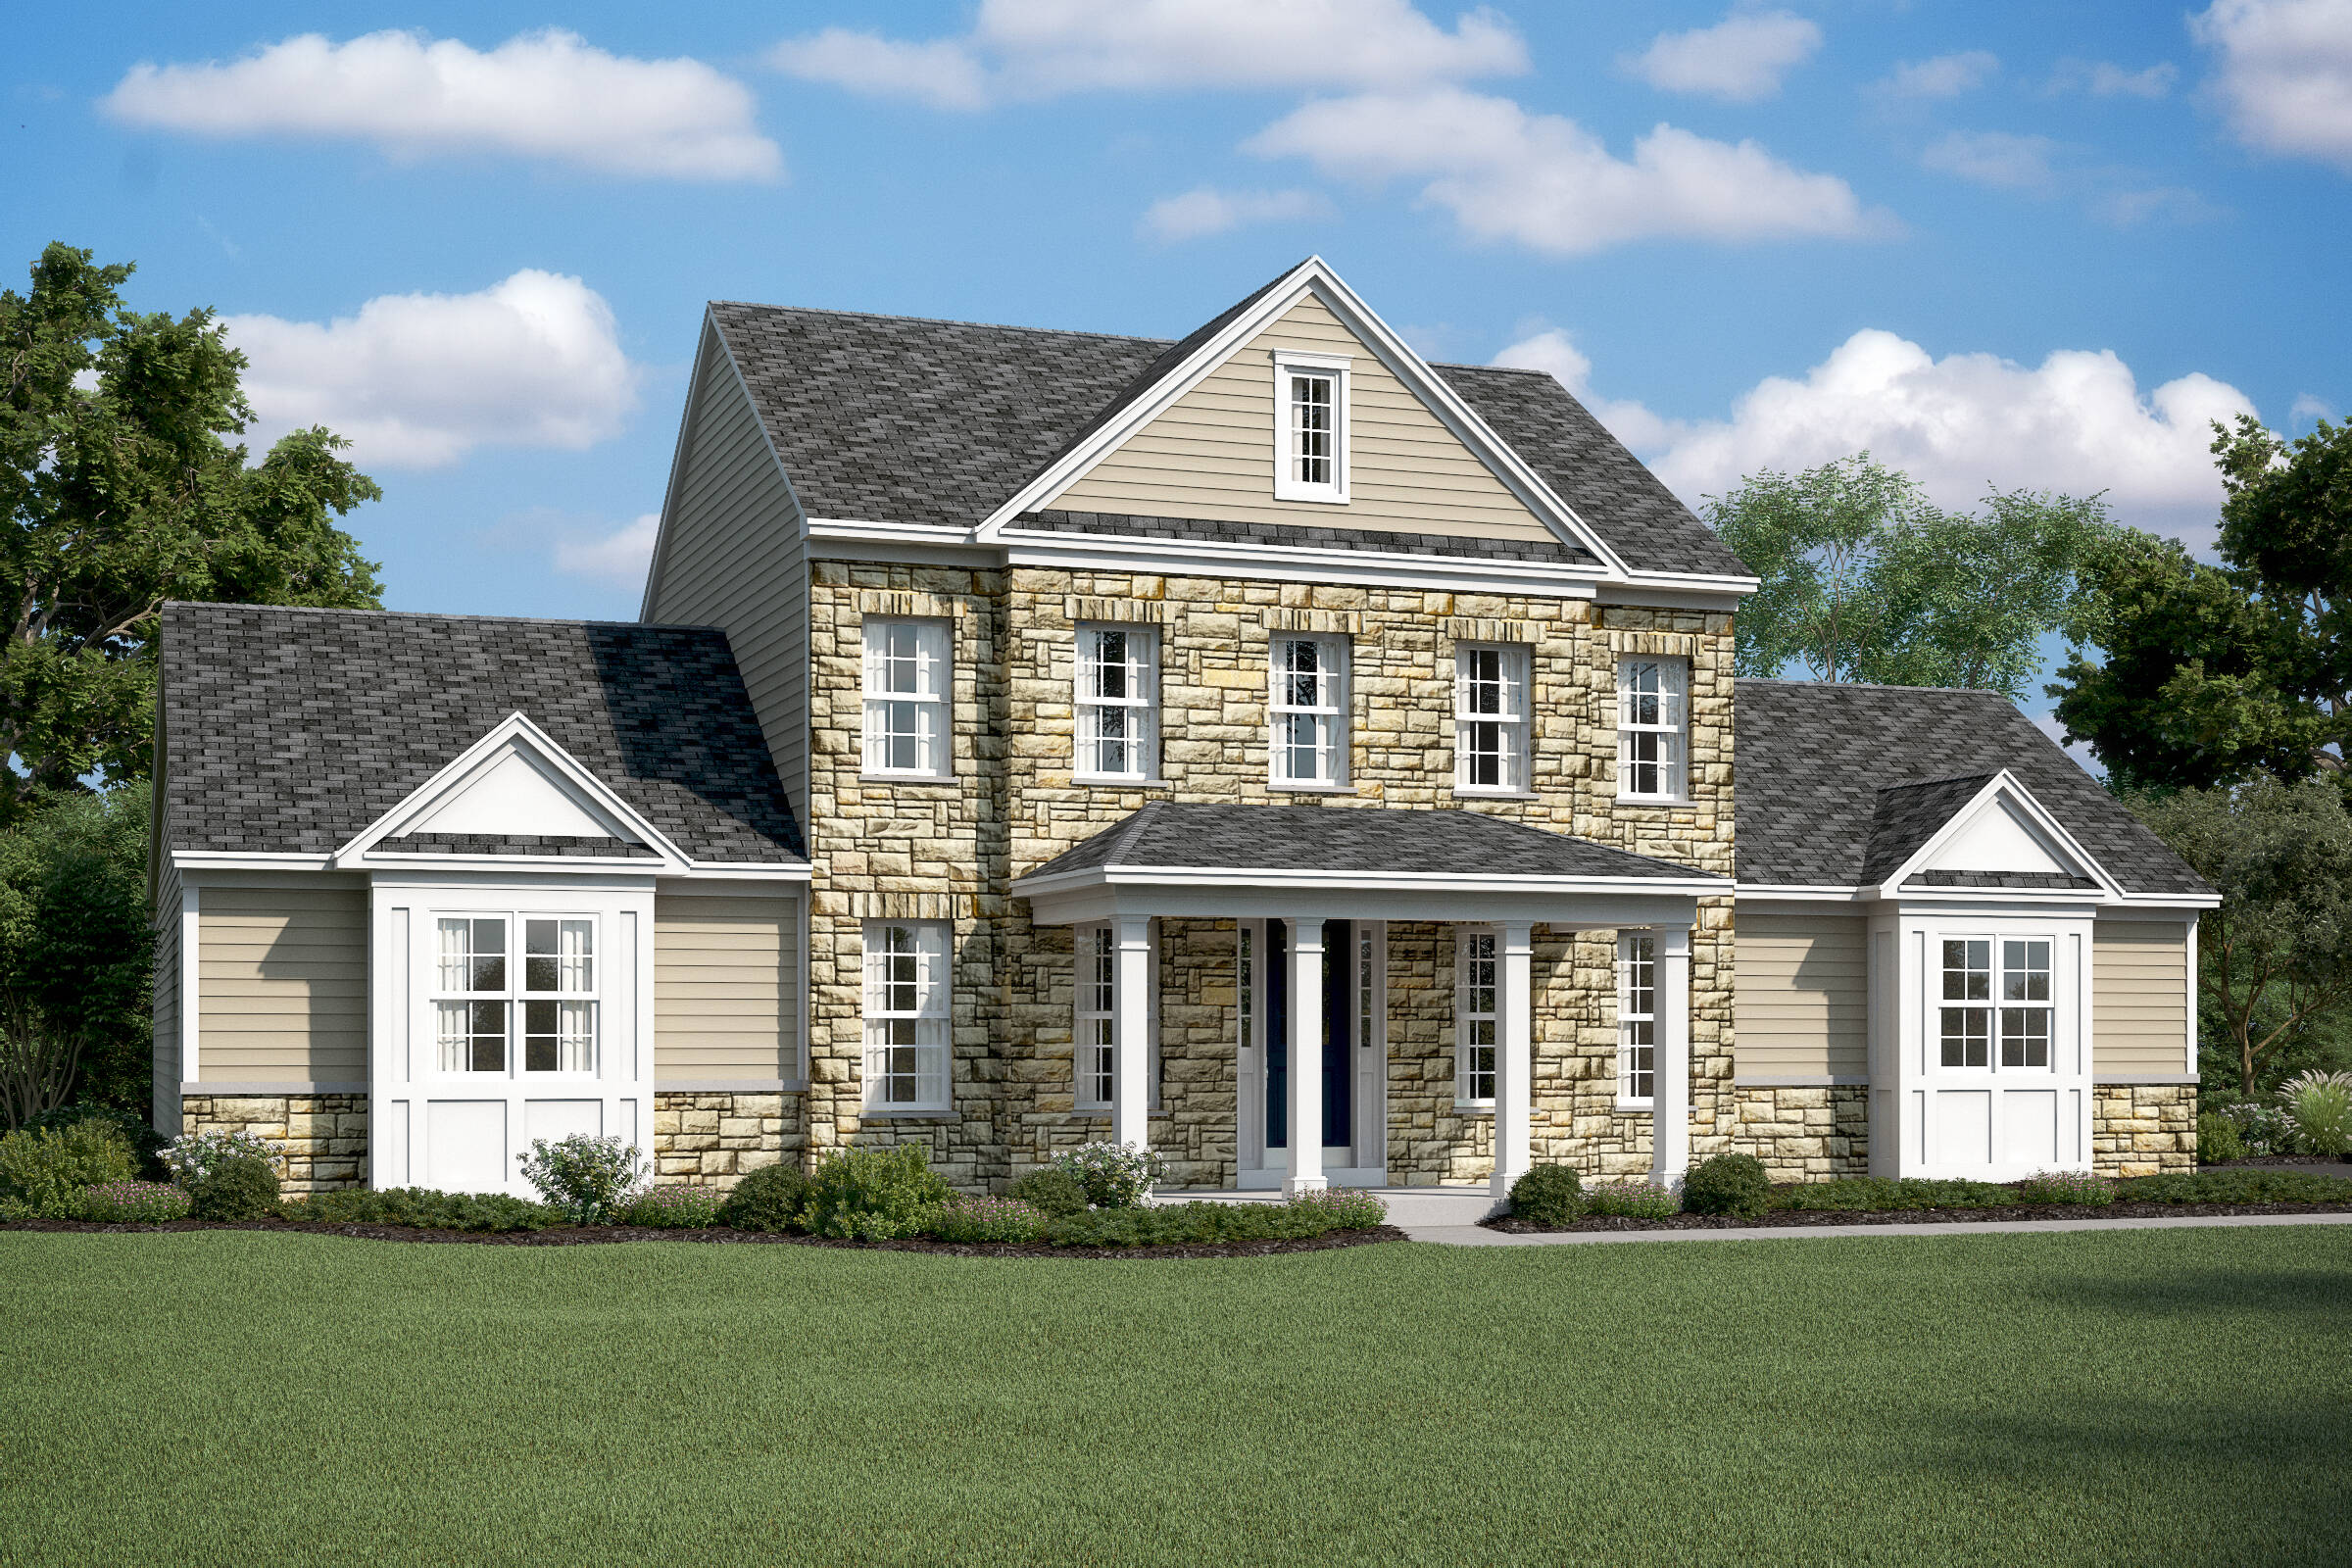 san michele gt new homes at reserves at wheatlands in virginia